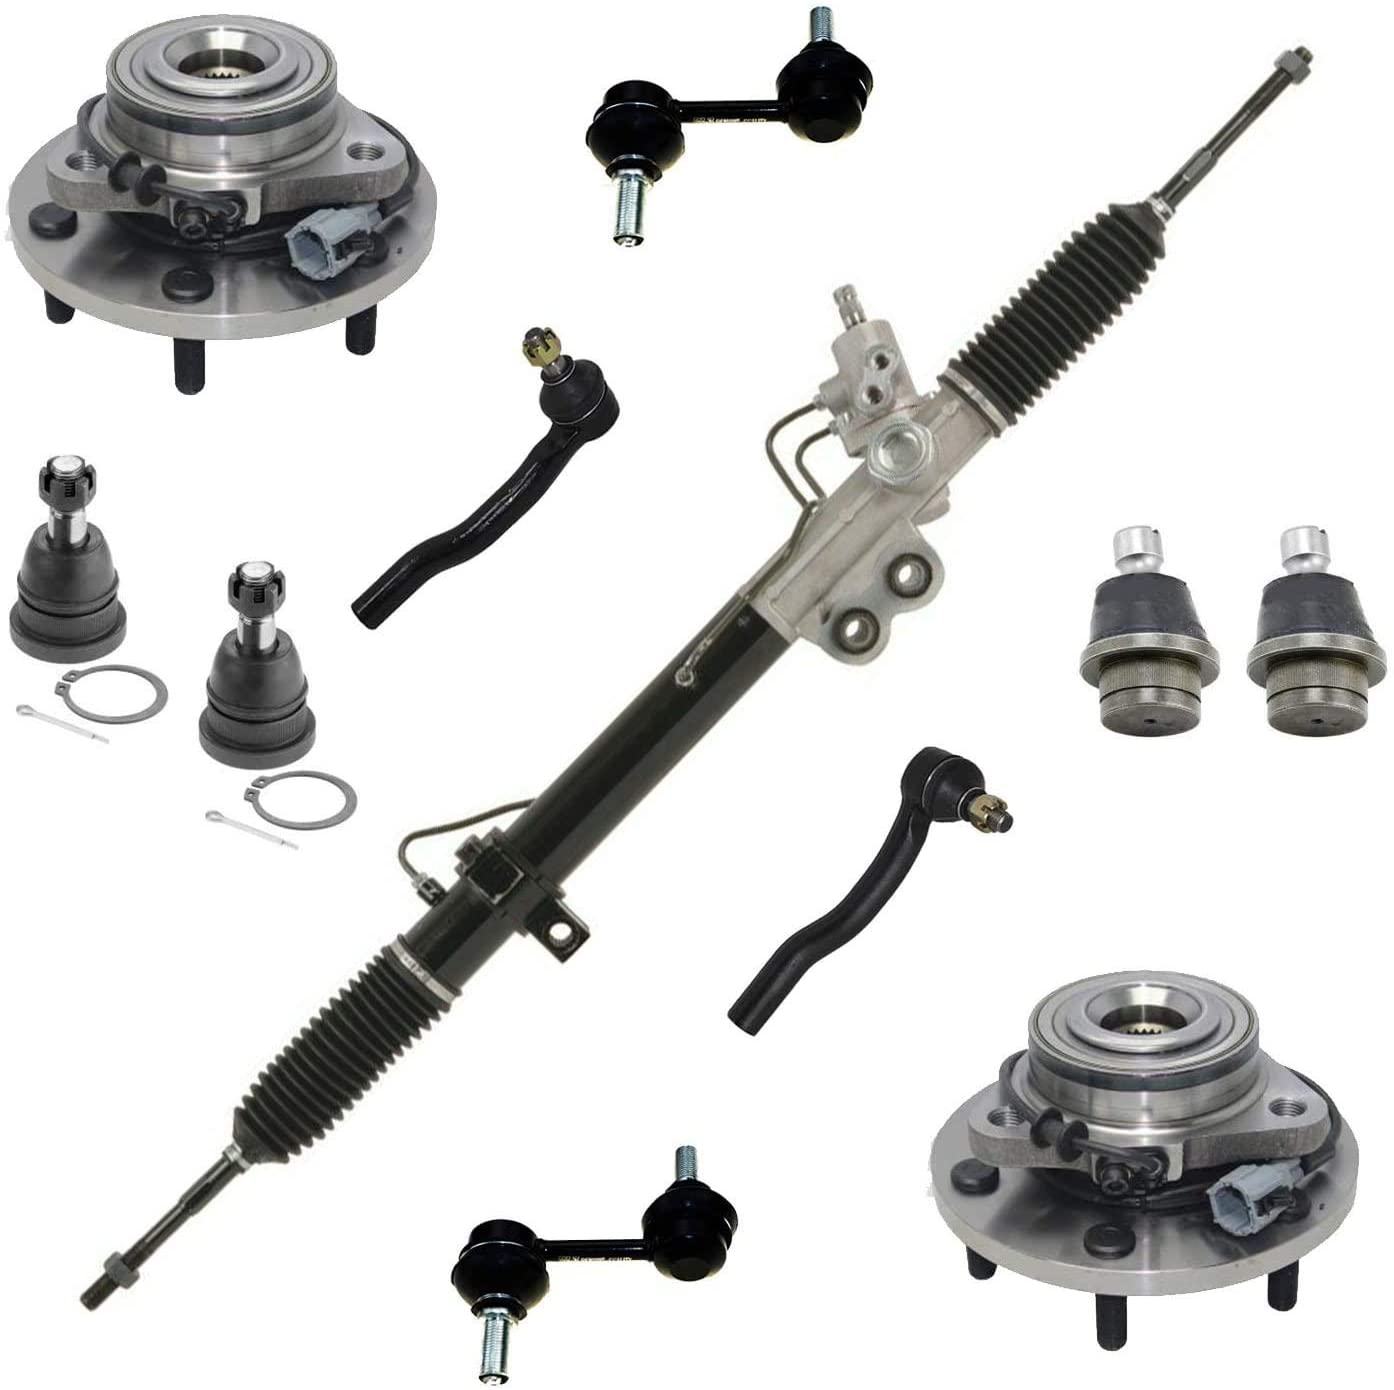 Detroit Axle - 11pc Power Steering Rack & Pinion w/Outer Tie Rods, Front Wheel Hub & Bearings, Sway Bar Links, Upper Lower Ball Joints for 05-07 Nissan Armada - [2004-2007 Titan] - Models w/ABS